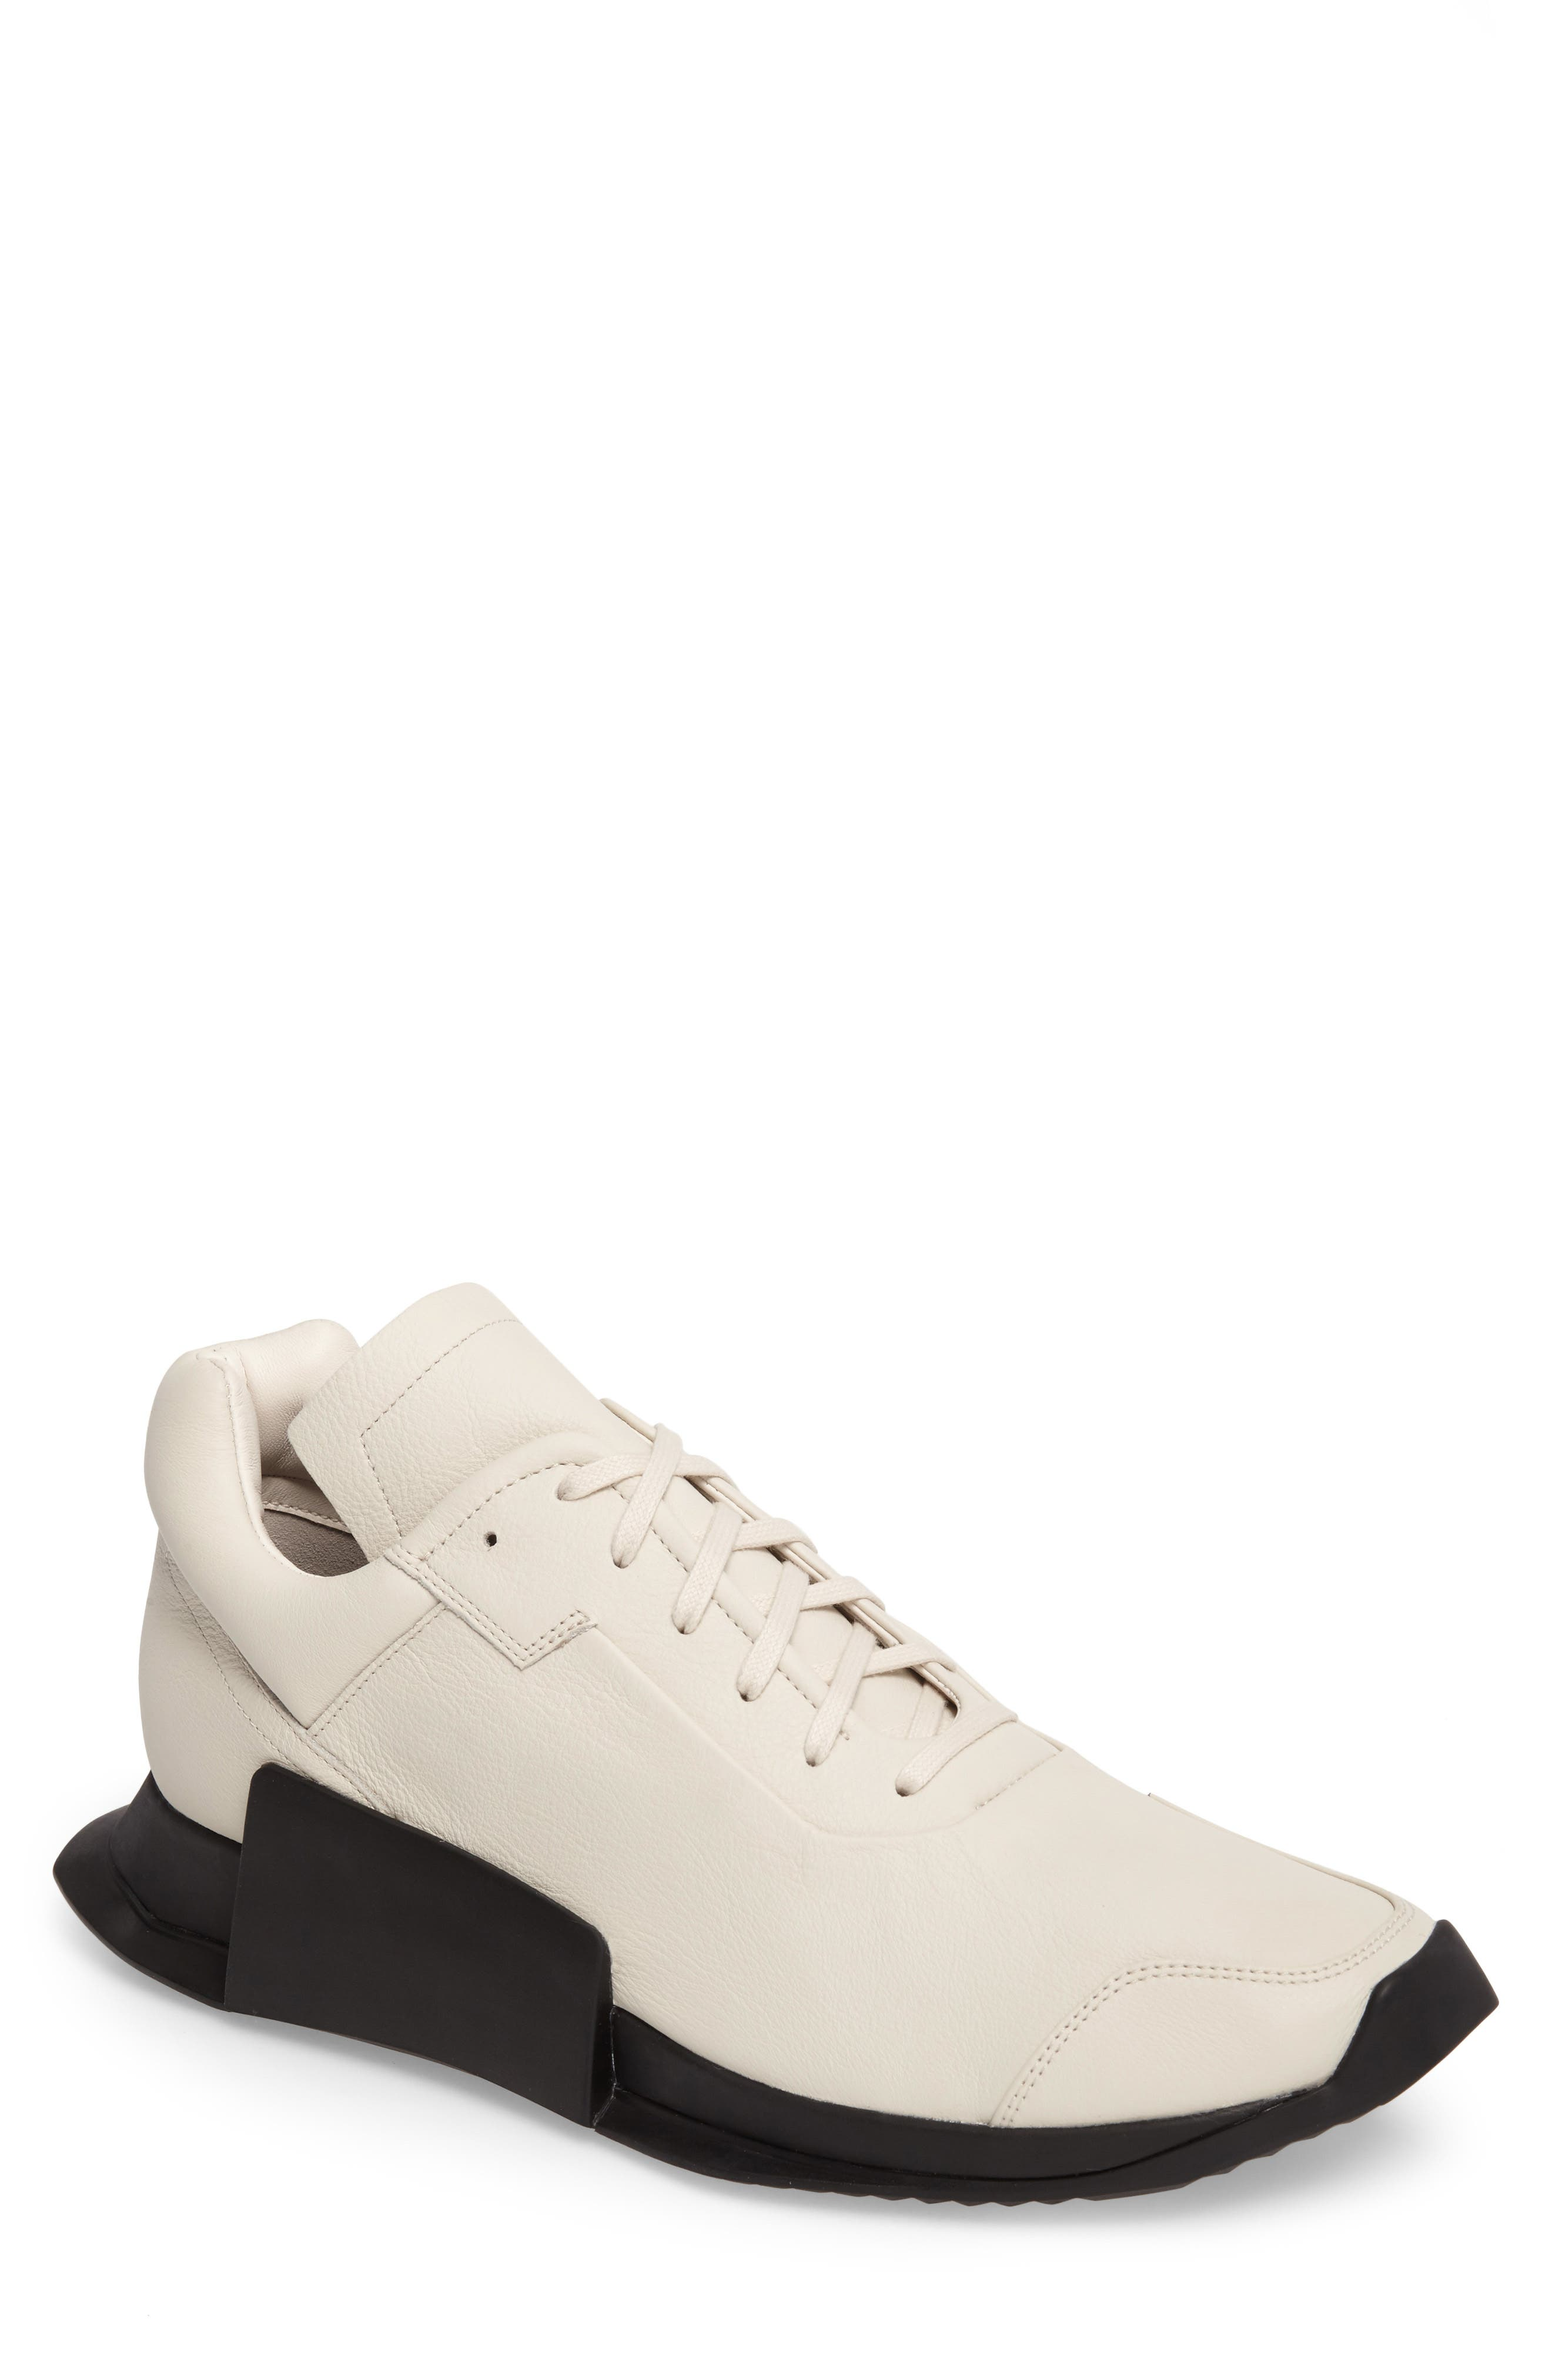 Main Image - Rick Owens by adidas New Runner Boost Sneaker (Men)